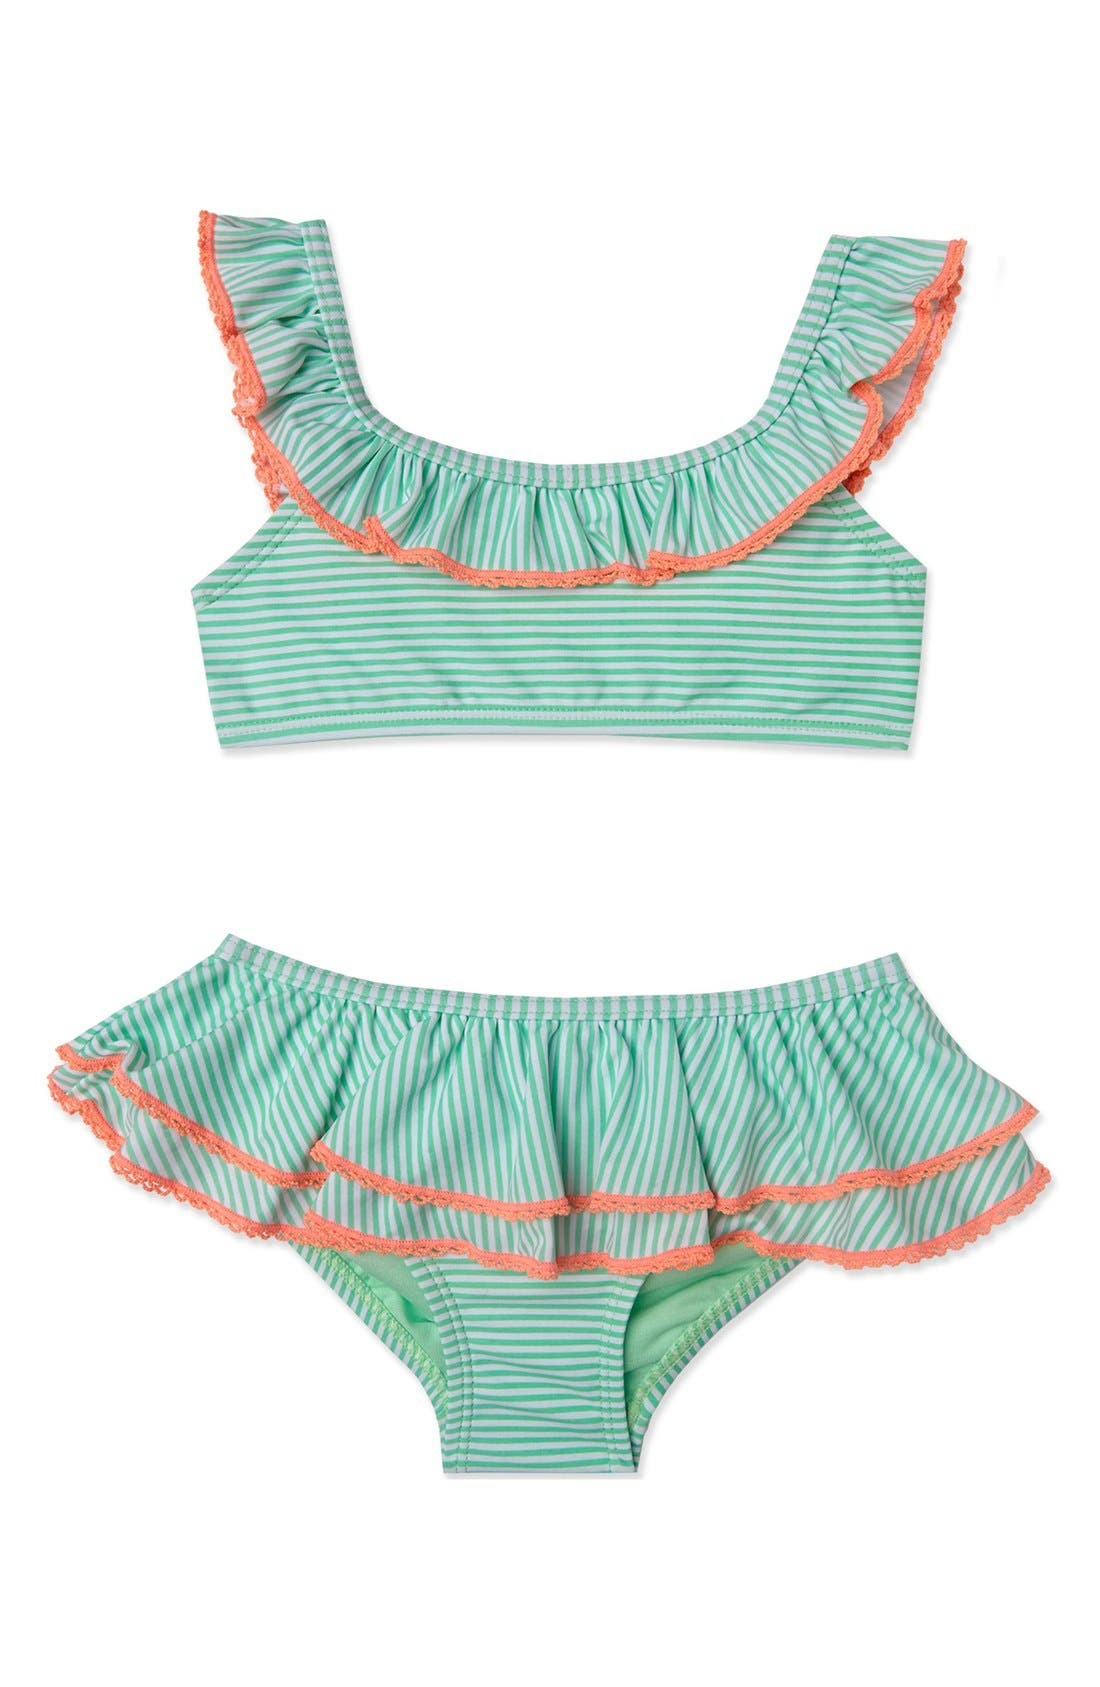 Alternate Image 1 Selected - Hula Star 'Sailor Stripe' Two-Piece Swimsuit (Toddler Girls & Little Girls)